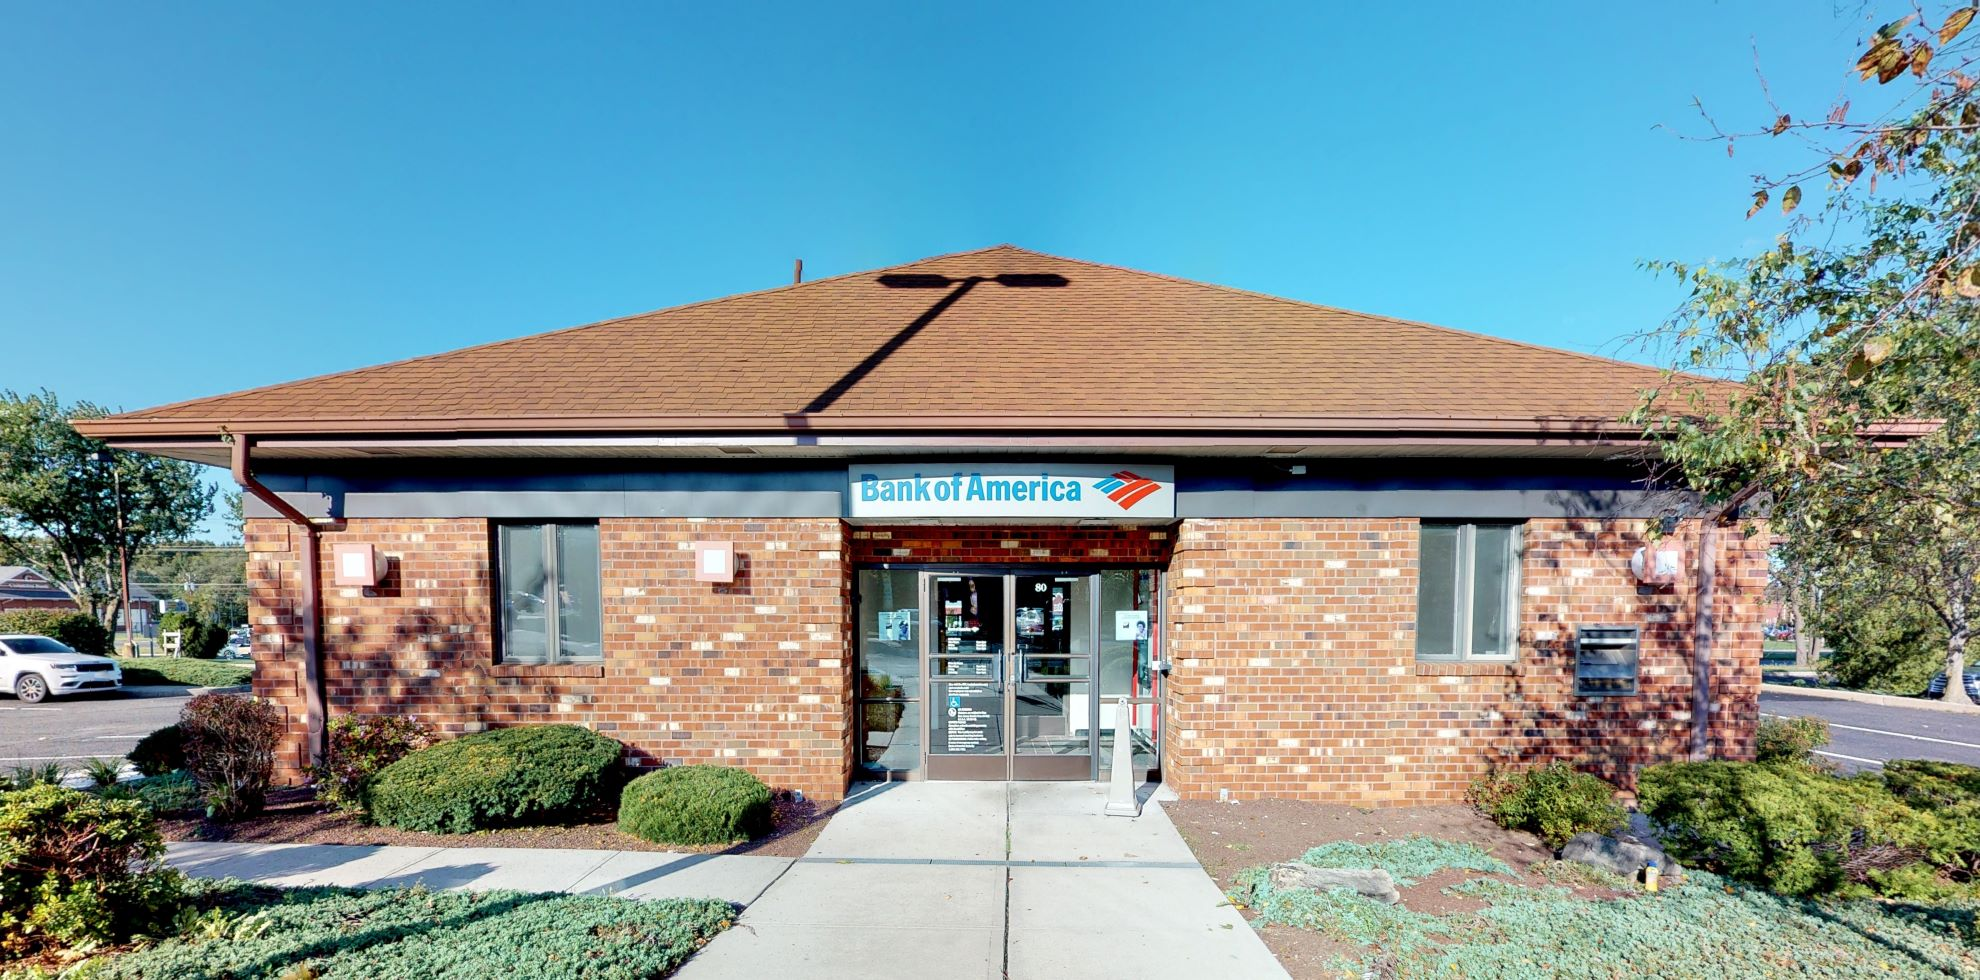 Bank of America financial center with drive-thru ATM   80 Route 9, Englishtown, NJ 07726